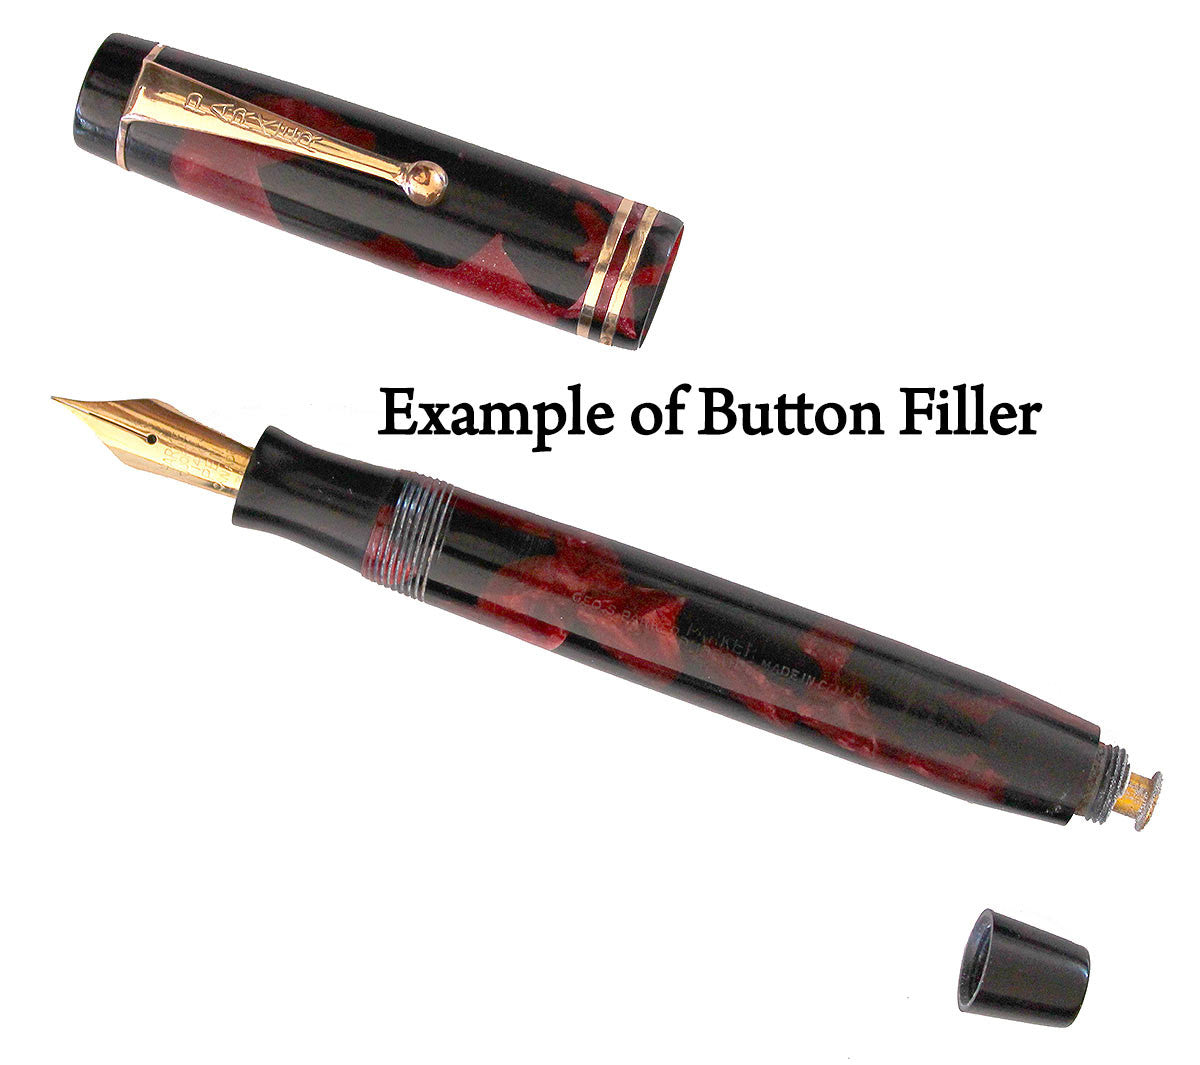 Example of Button Filler with New Rubber Sac